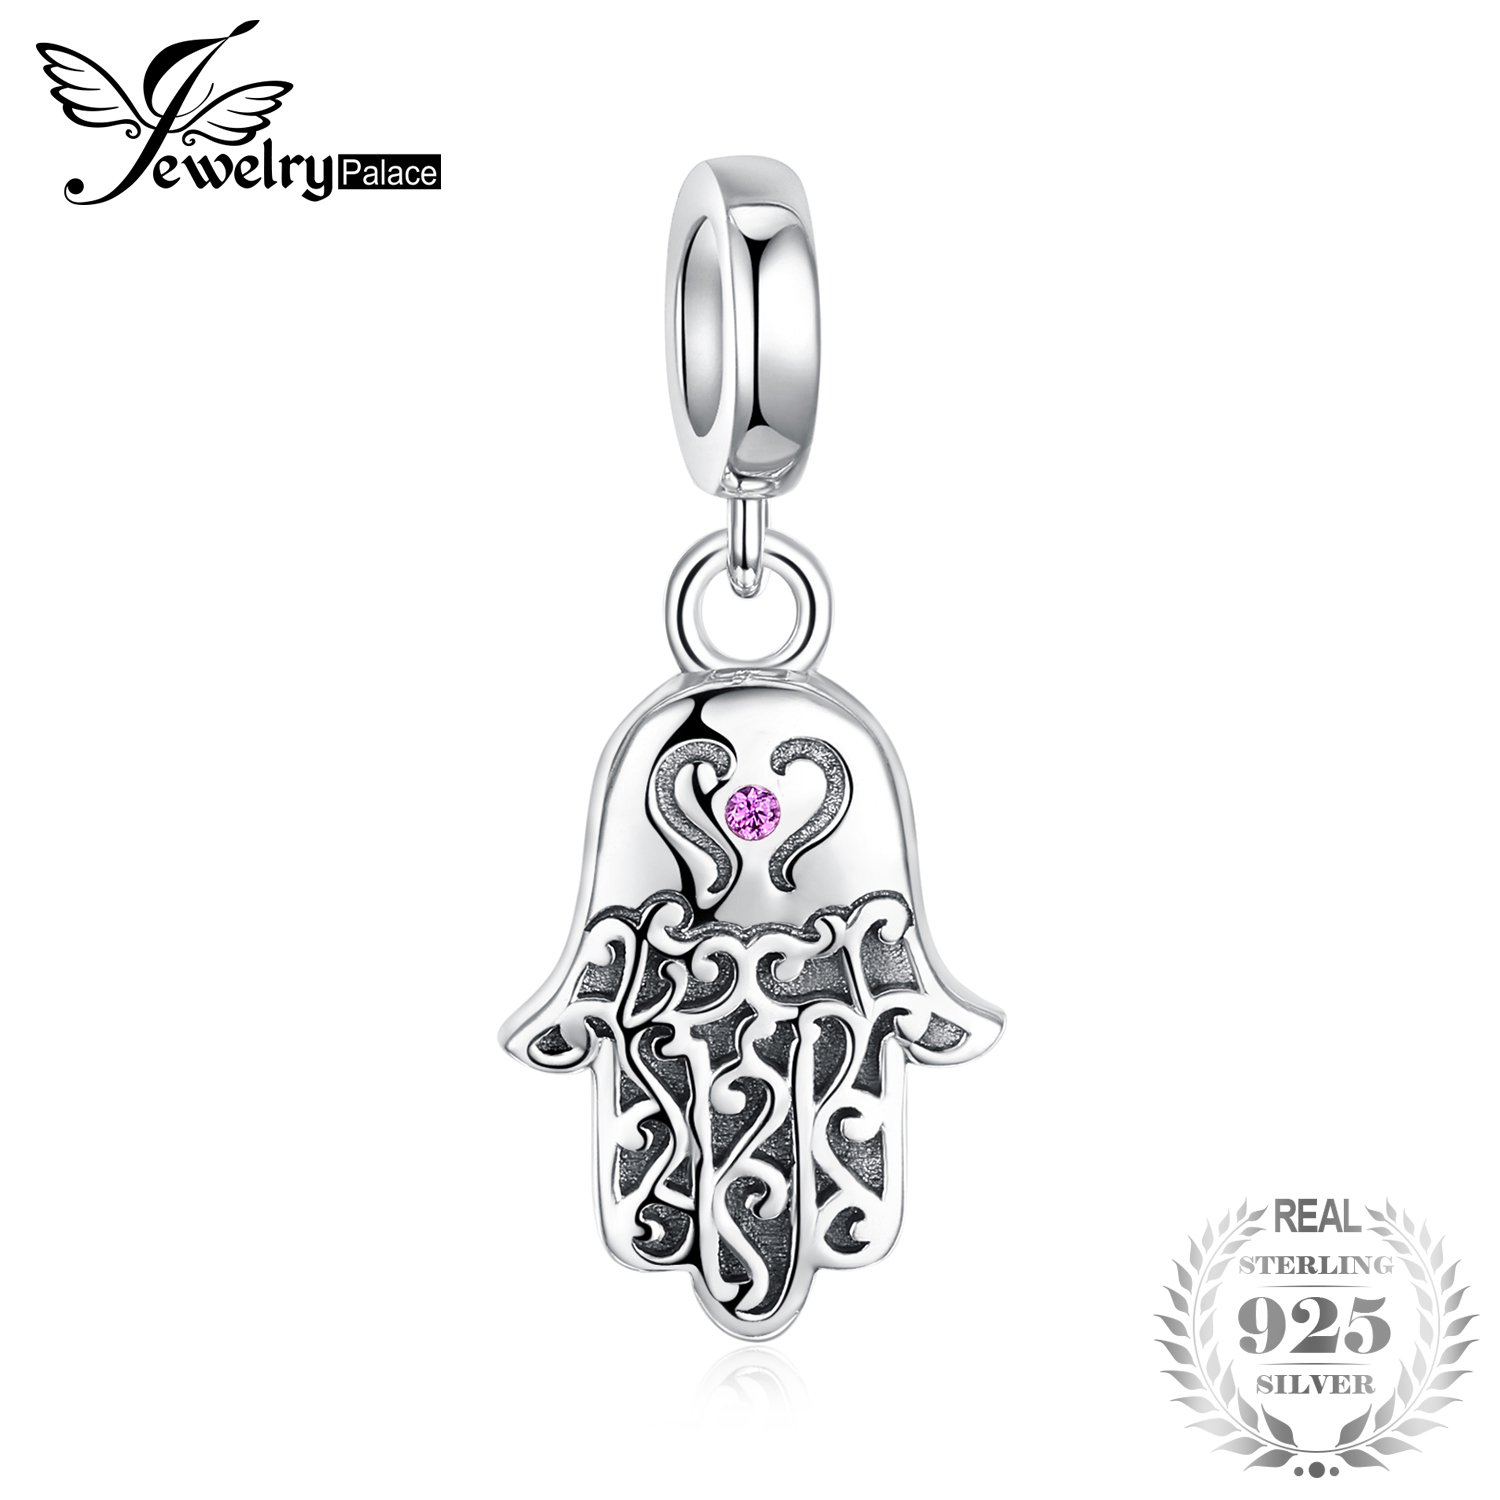 JewelryPalace DIY Beads  925 Sterling Silver Charm Pink Cubic Zirconia Fatima Hand Dangle Bead Charm Fit Bracelets FashionJewelryPalace DIY Beads  925 Sterling Silver Charm Pink Cubic Zirconia Fatima Hand Dangle Bead Charm Fit Bracelets Fashion